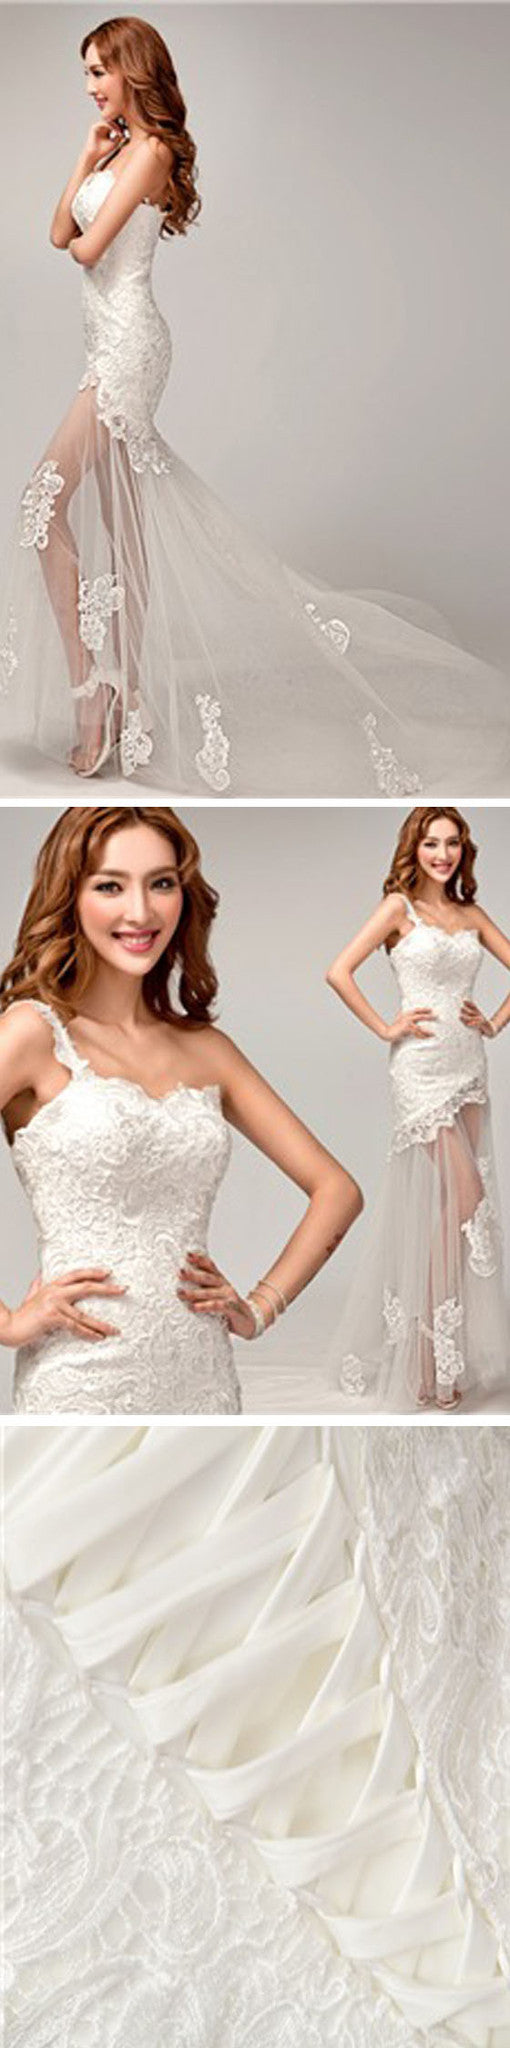 4e639e8697f595 ... Chic Design One Shoulder Lace Top See Through Sexy Mermaid Lace Up  Wedding Dresses